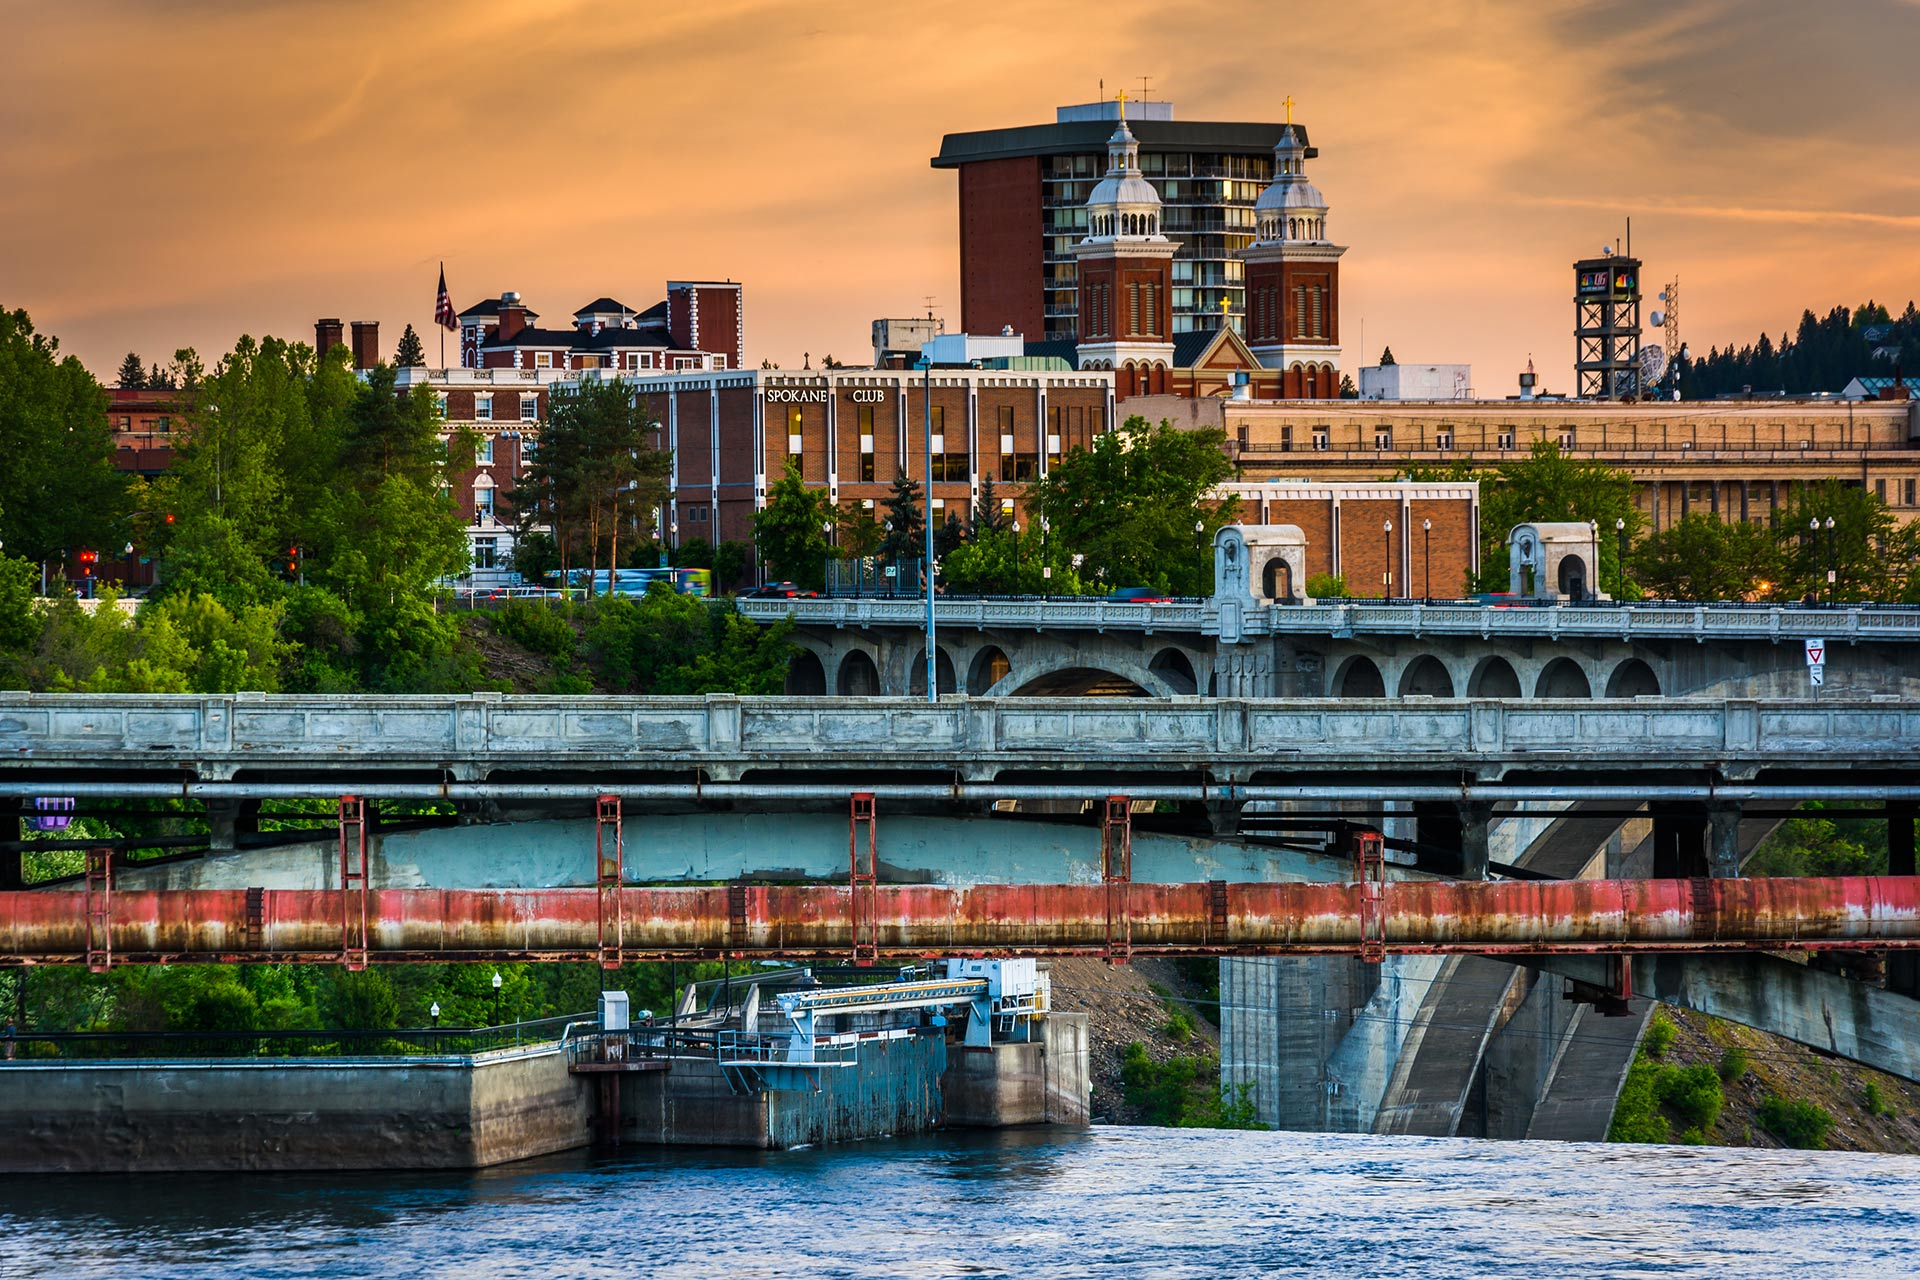 Bridges over the Spokane River and buildings at sunset in Washington